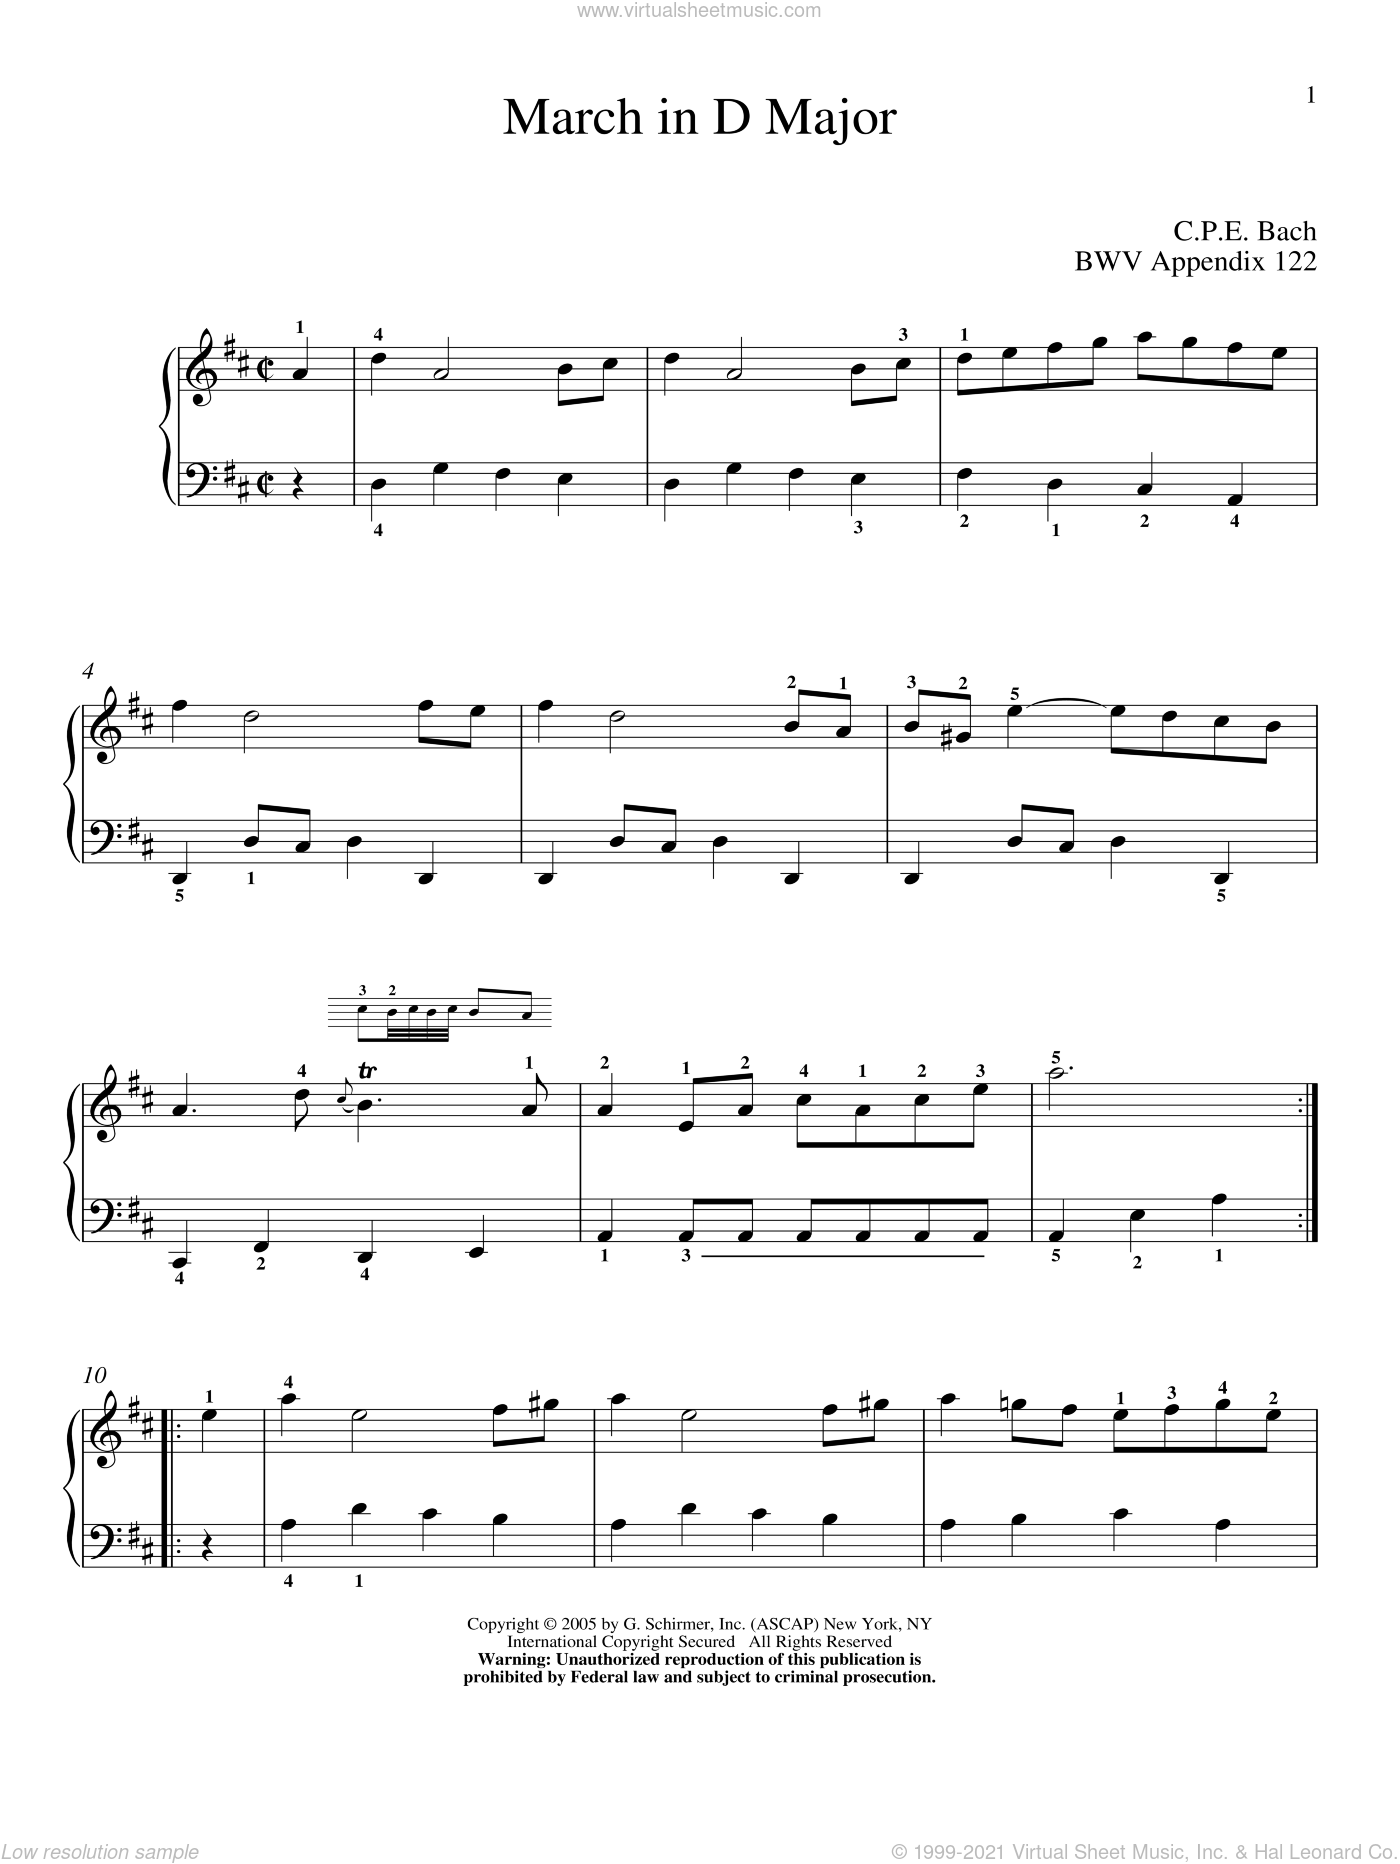 March In D Major sheet music for piano solo by Johann Sebastian Bach and Christos Tsitsaros, classical score, intermediate skill level